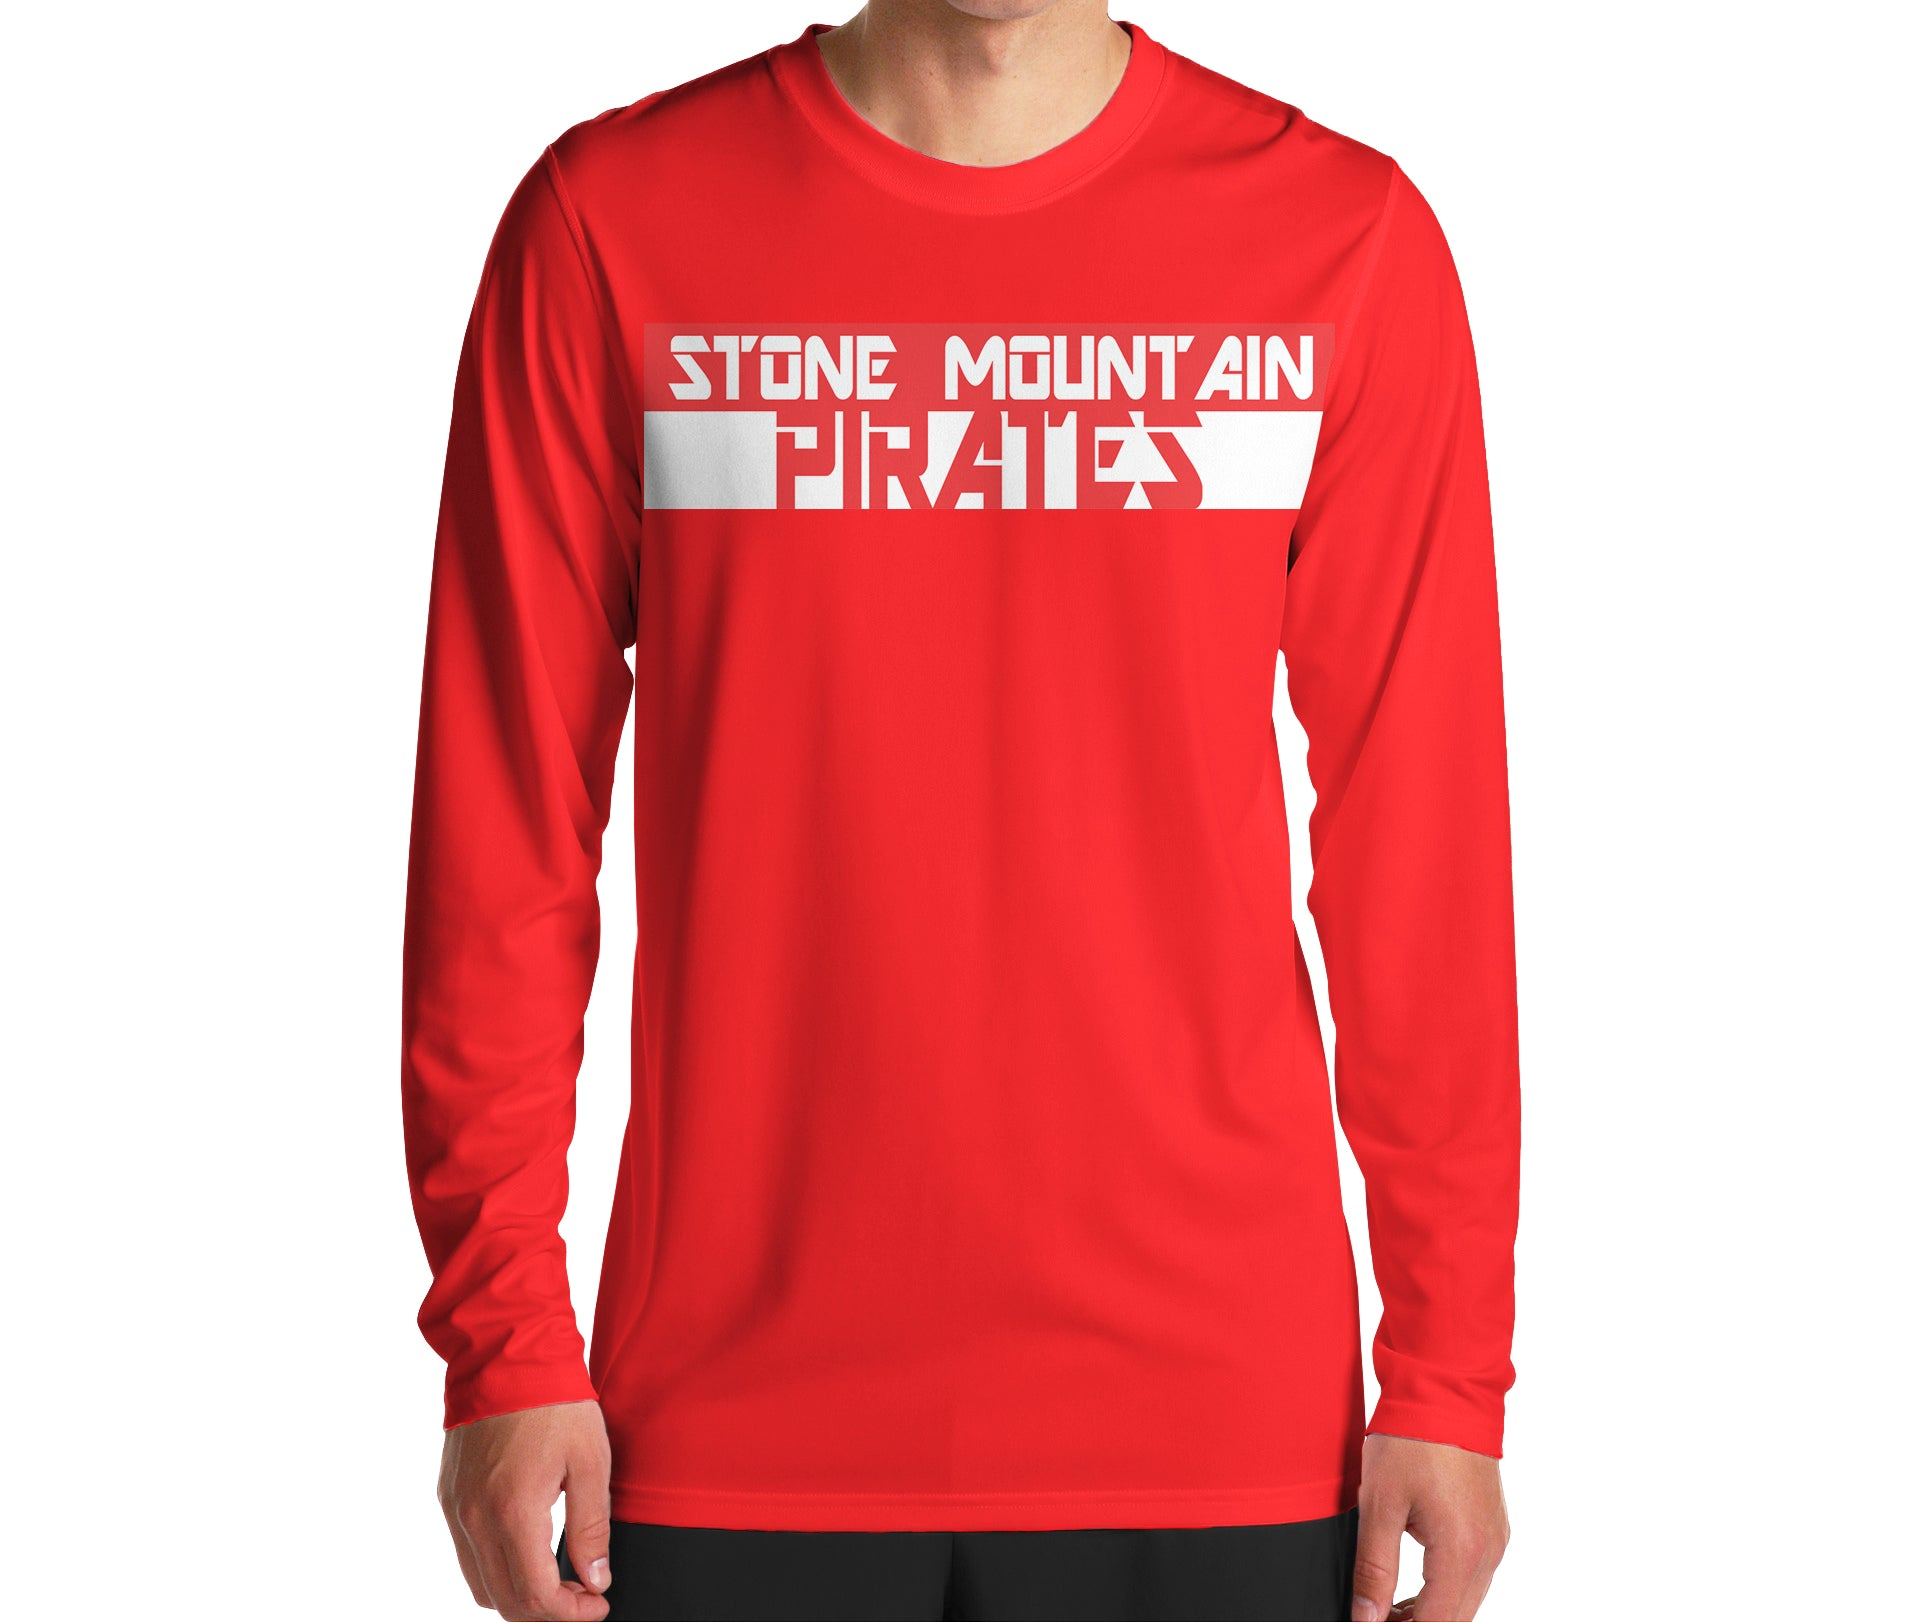 Stone Mountain Pirates Red Blocked Out Shirt - Peachy Brass